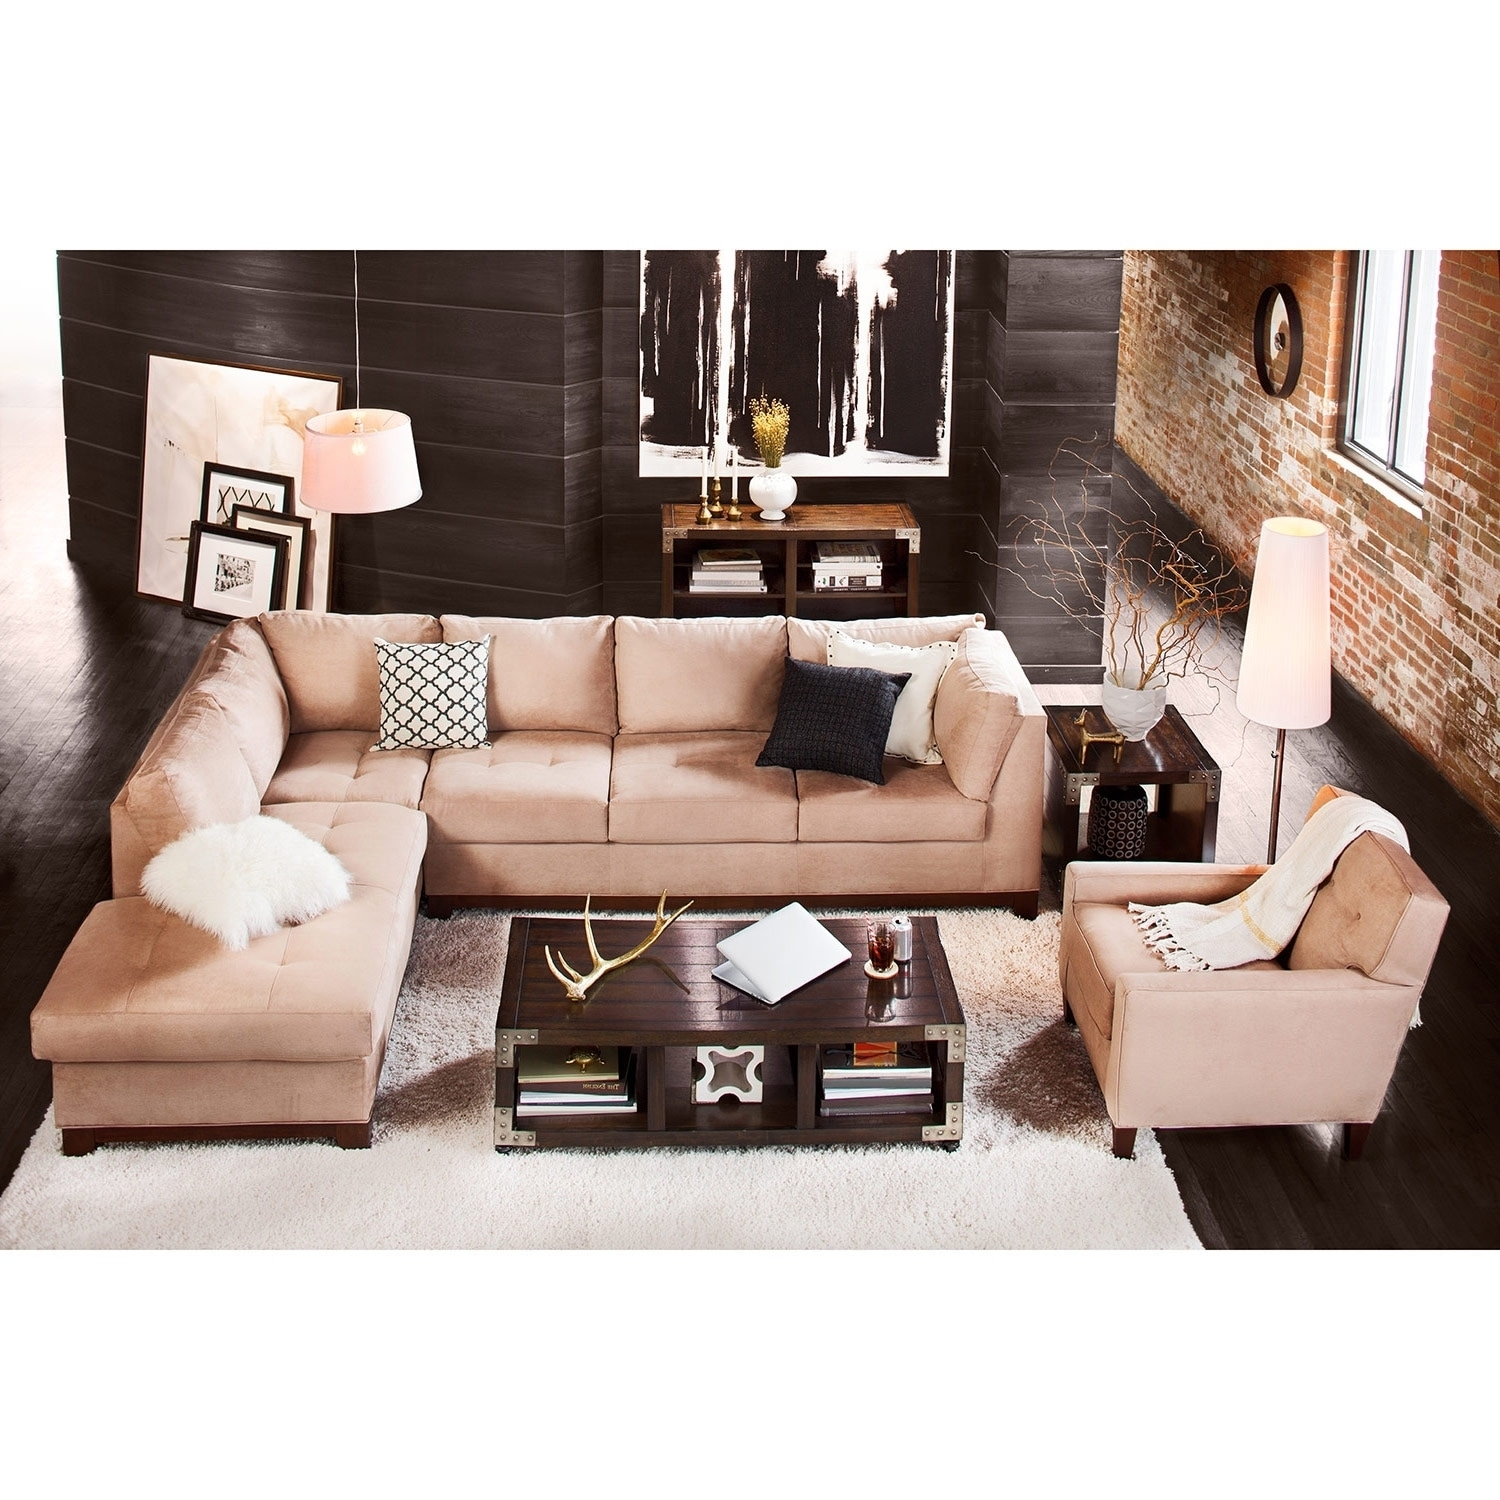 Soho 2-Piece Sectional With Left-Facing Chaise - Cobblestone | Value with Arrowmask 2 Piece Sectionals With Sleeper & Right Facing Chaise (Image 28 of 30)